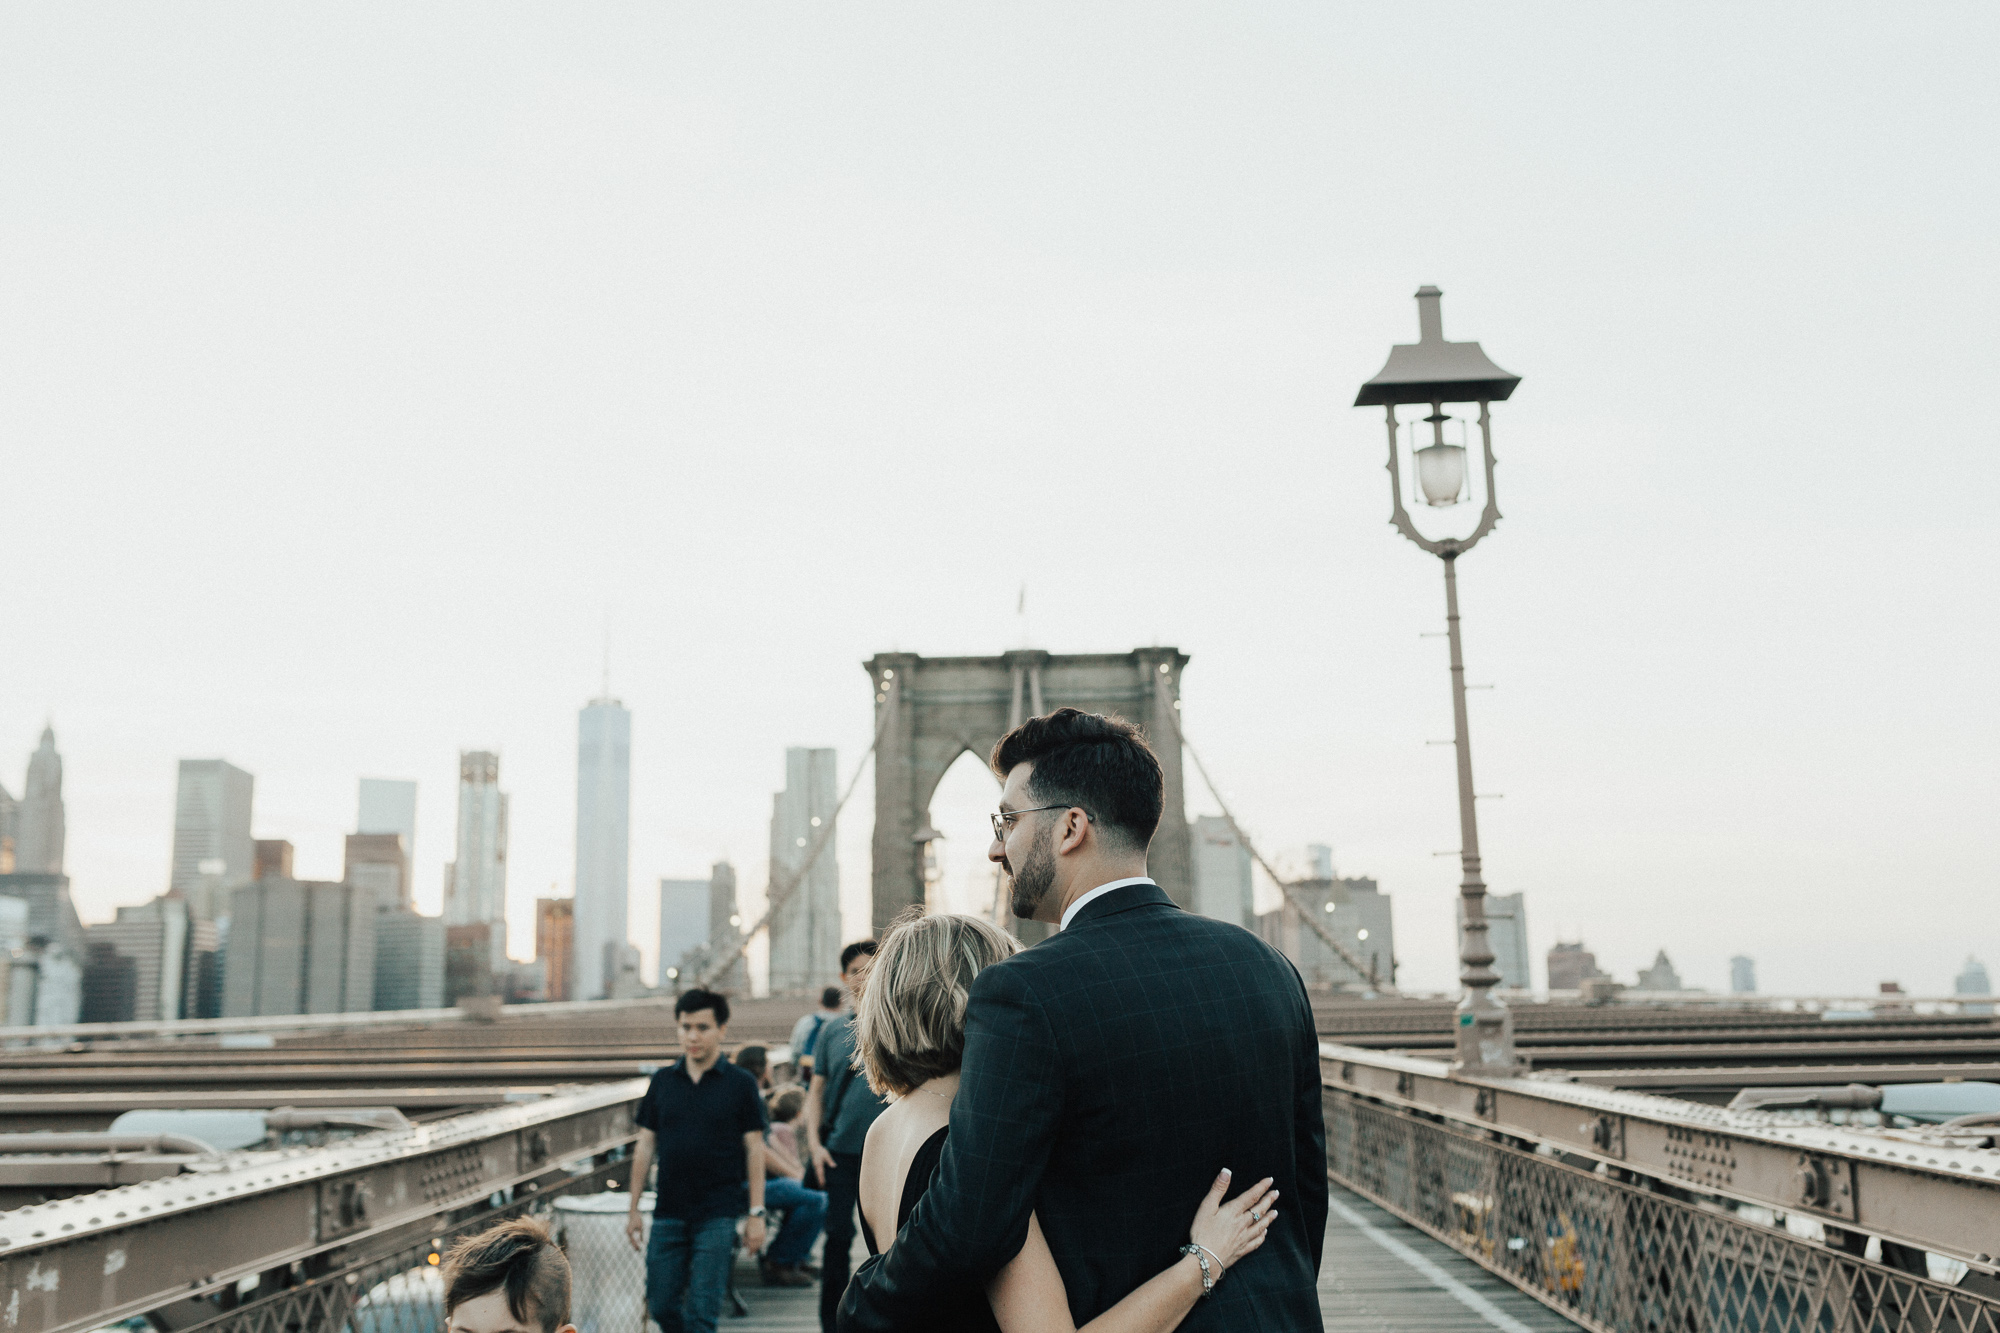 brooklyn_nyc_engagement_photography-71-of-83.jpg